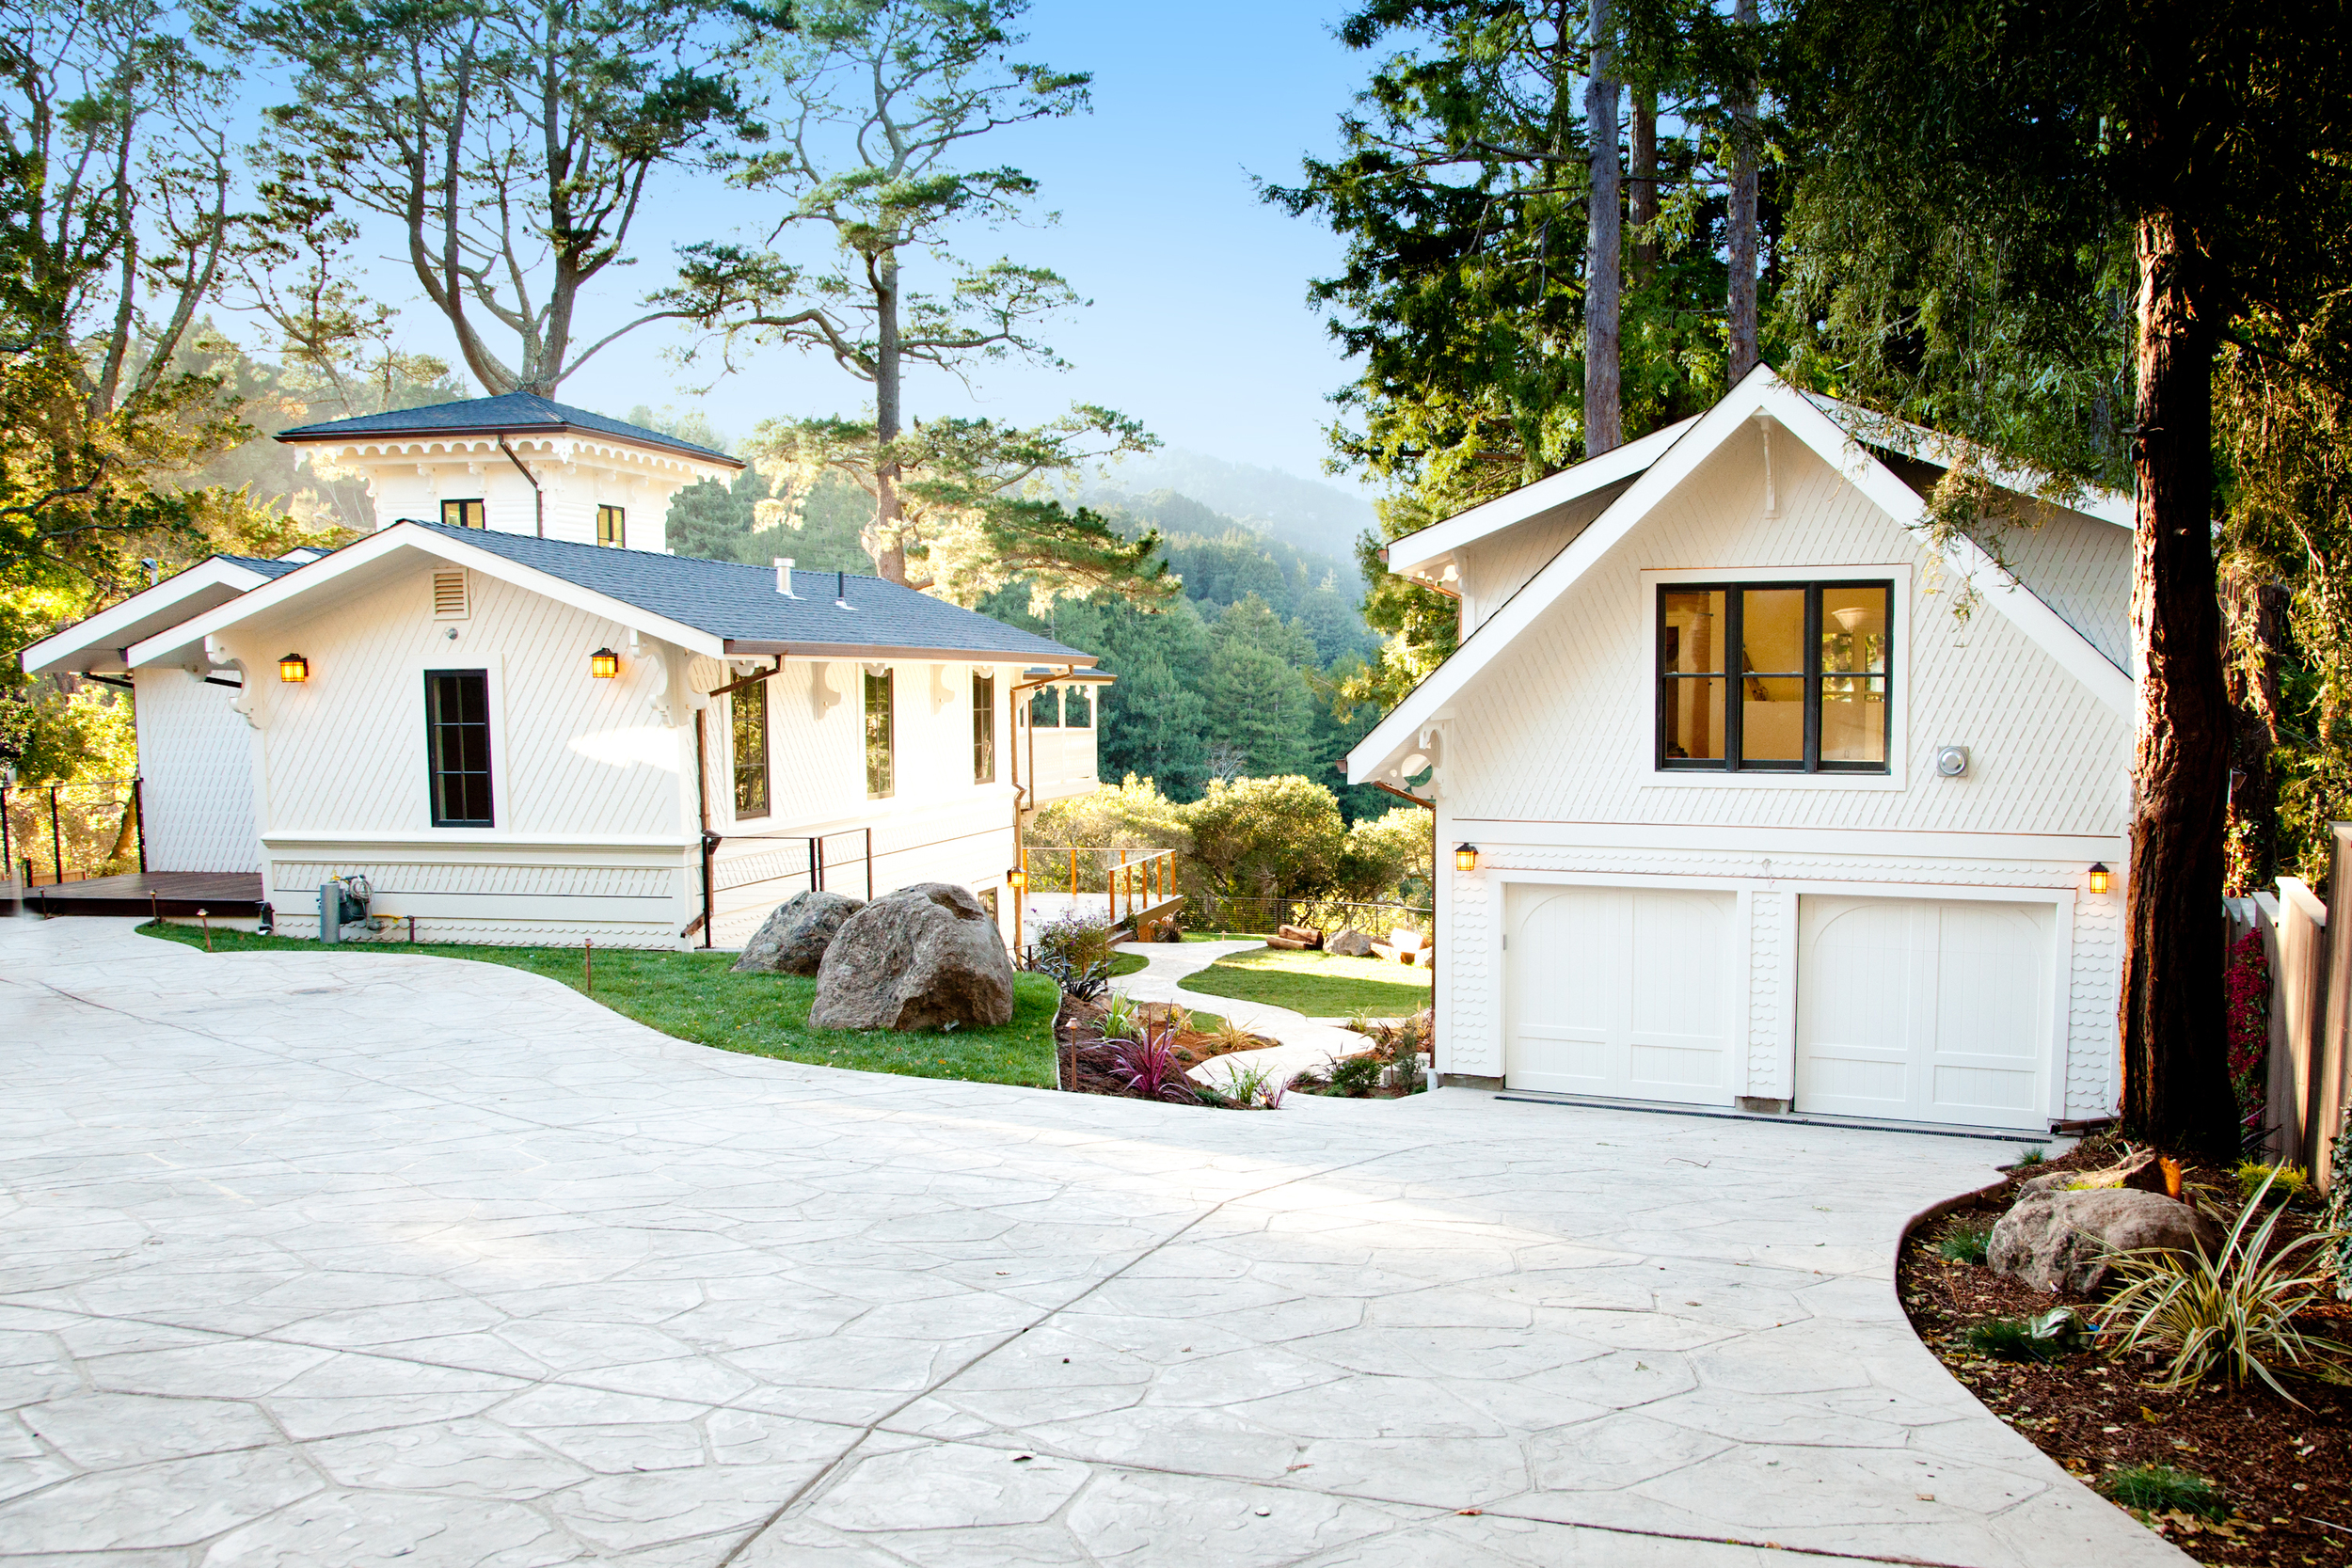 7 Heuters Lane, Mill Valley - Sold for $5,200,000. Represented sellers.